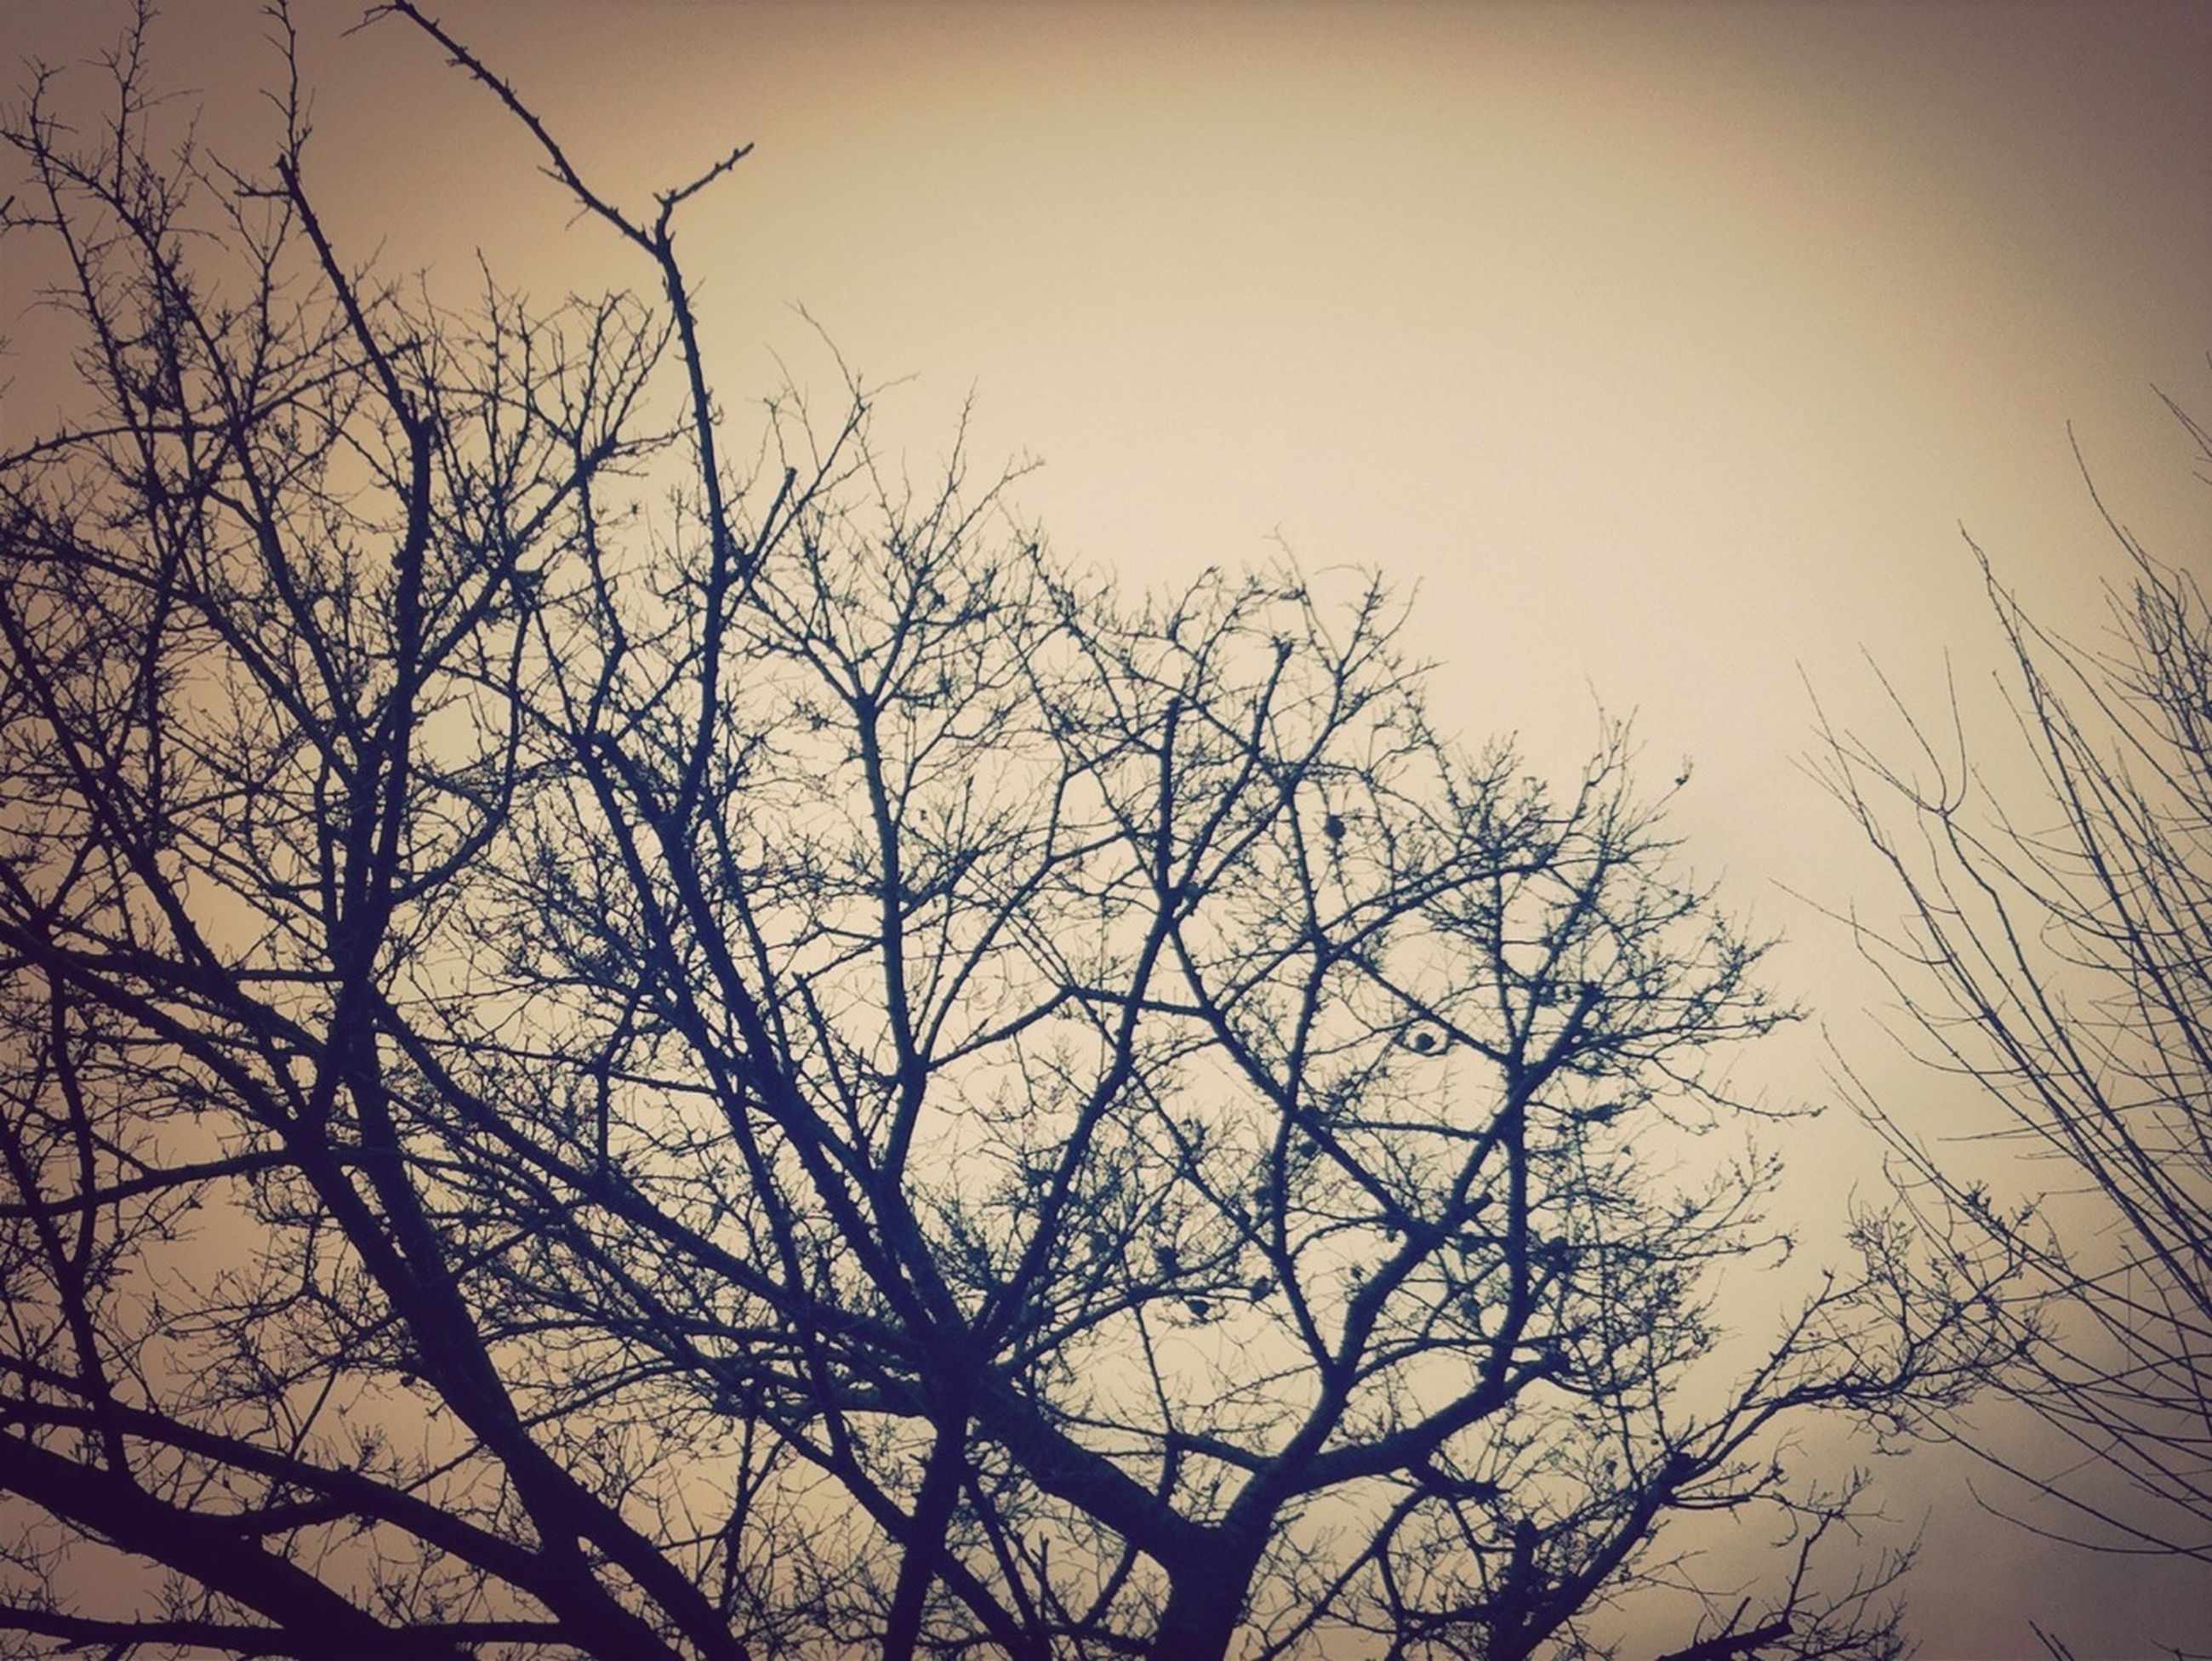 bare tree, branch, low angle view, tree, silhouette, tranquility, clear sky, nature, sky, beauty in nature, scenics, dusk, sunset, tranquil scene, outdoors, growth, no people, copy space, day, high section